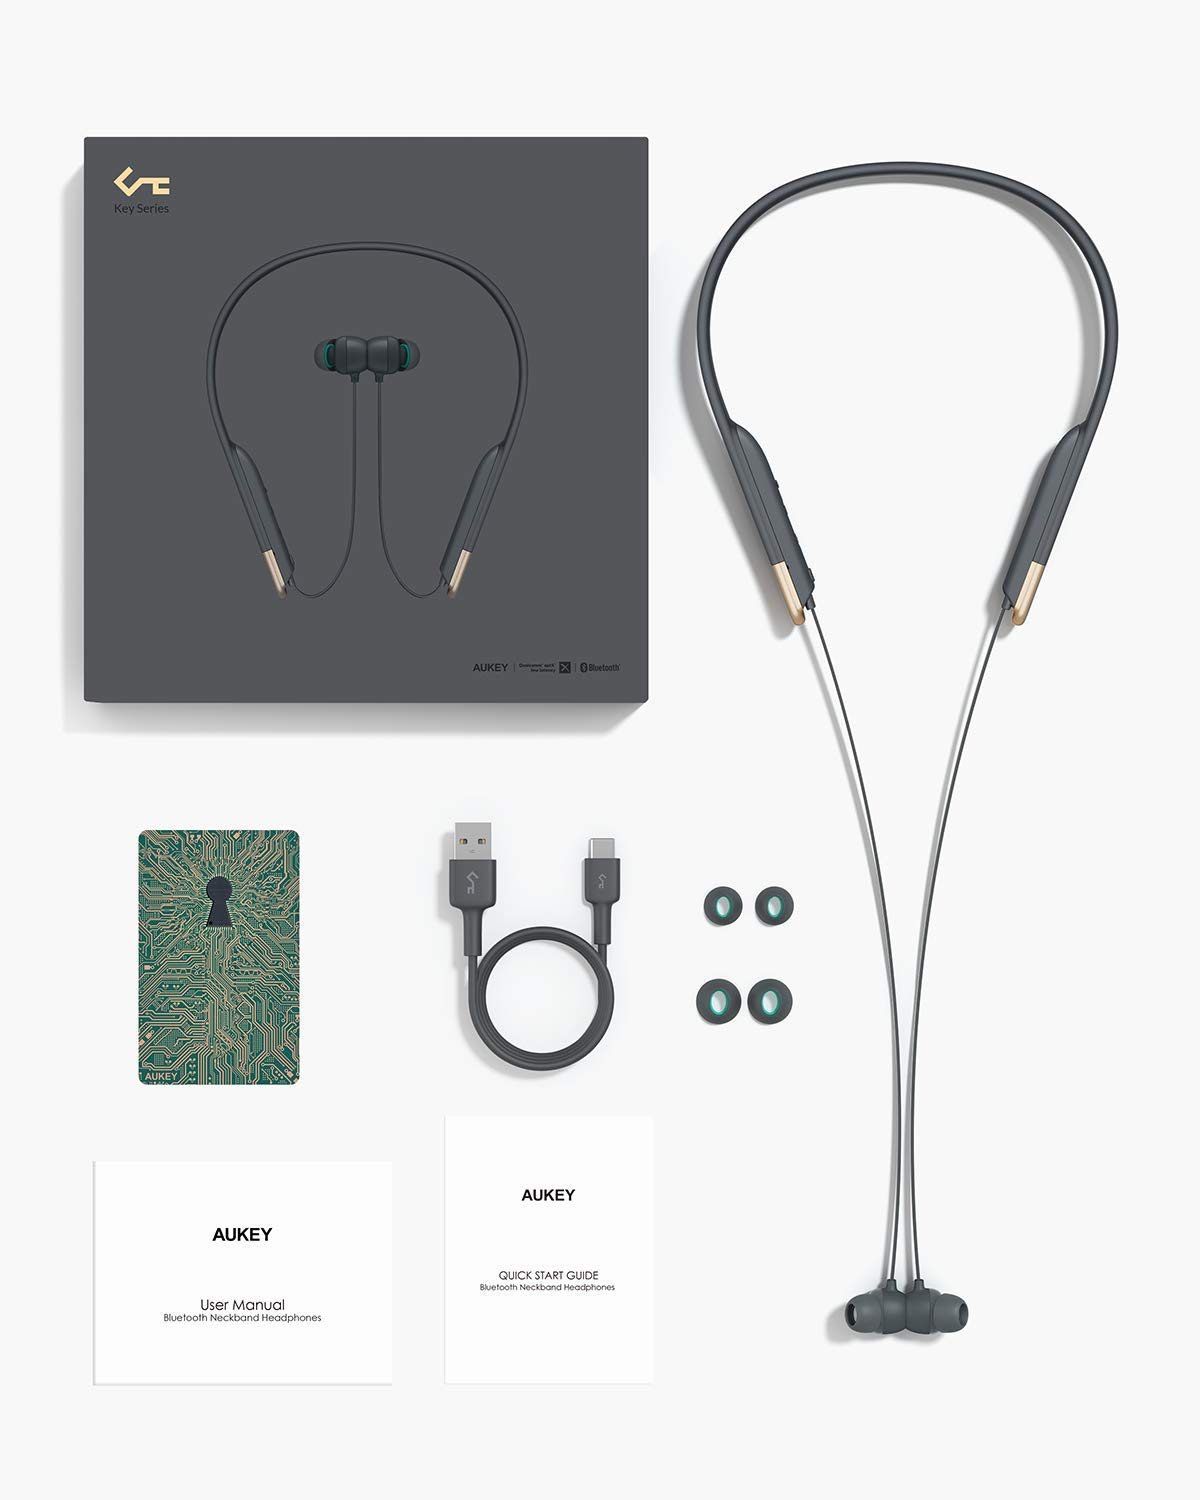 Neckband Earphones Key Series Wireless Earbuds Bluetooth 5.0 aptX | EP-B33 | Aukey supertech.pk